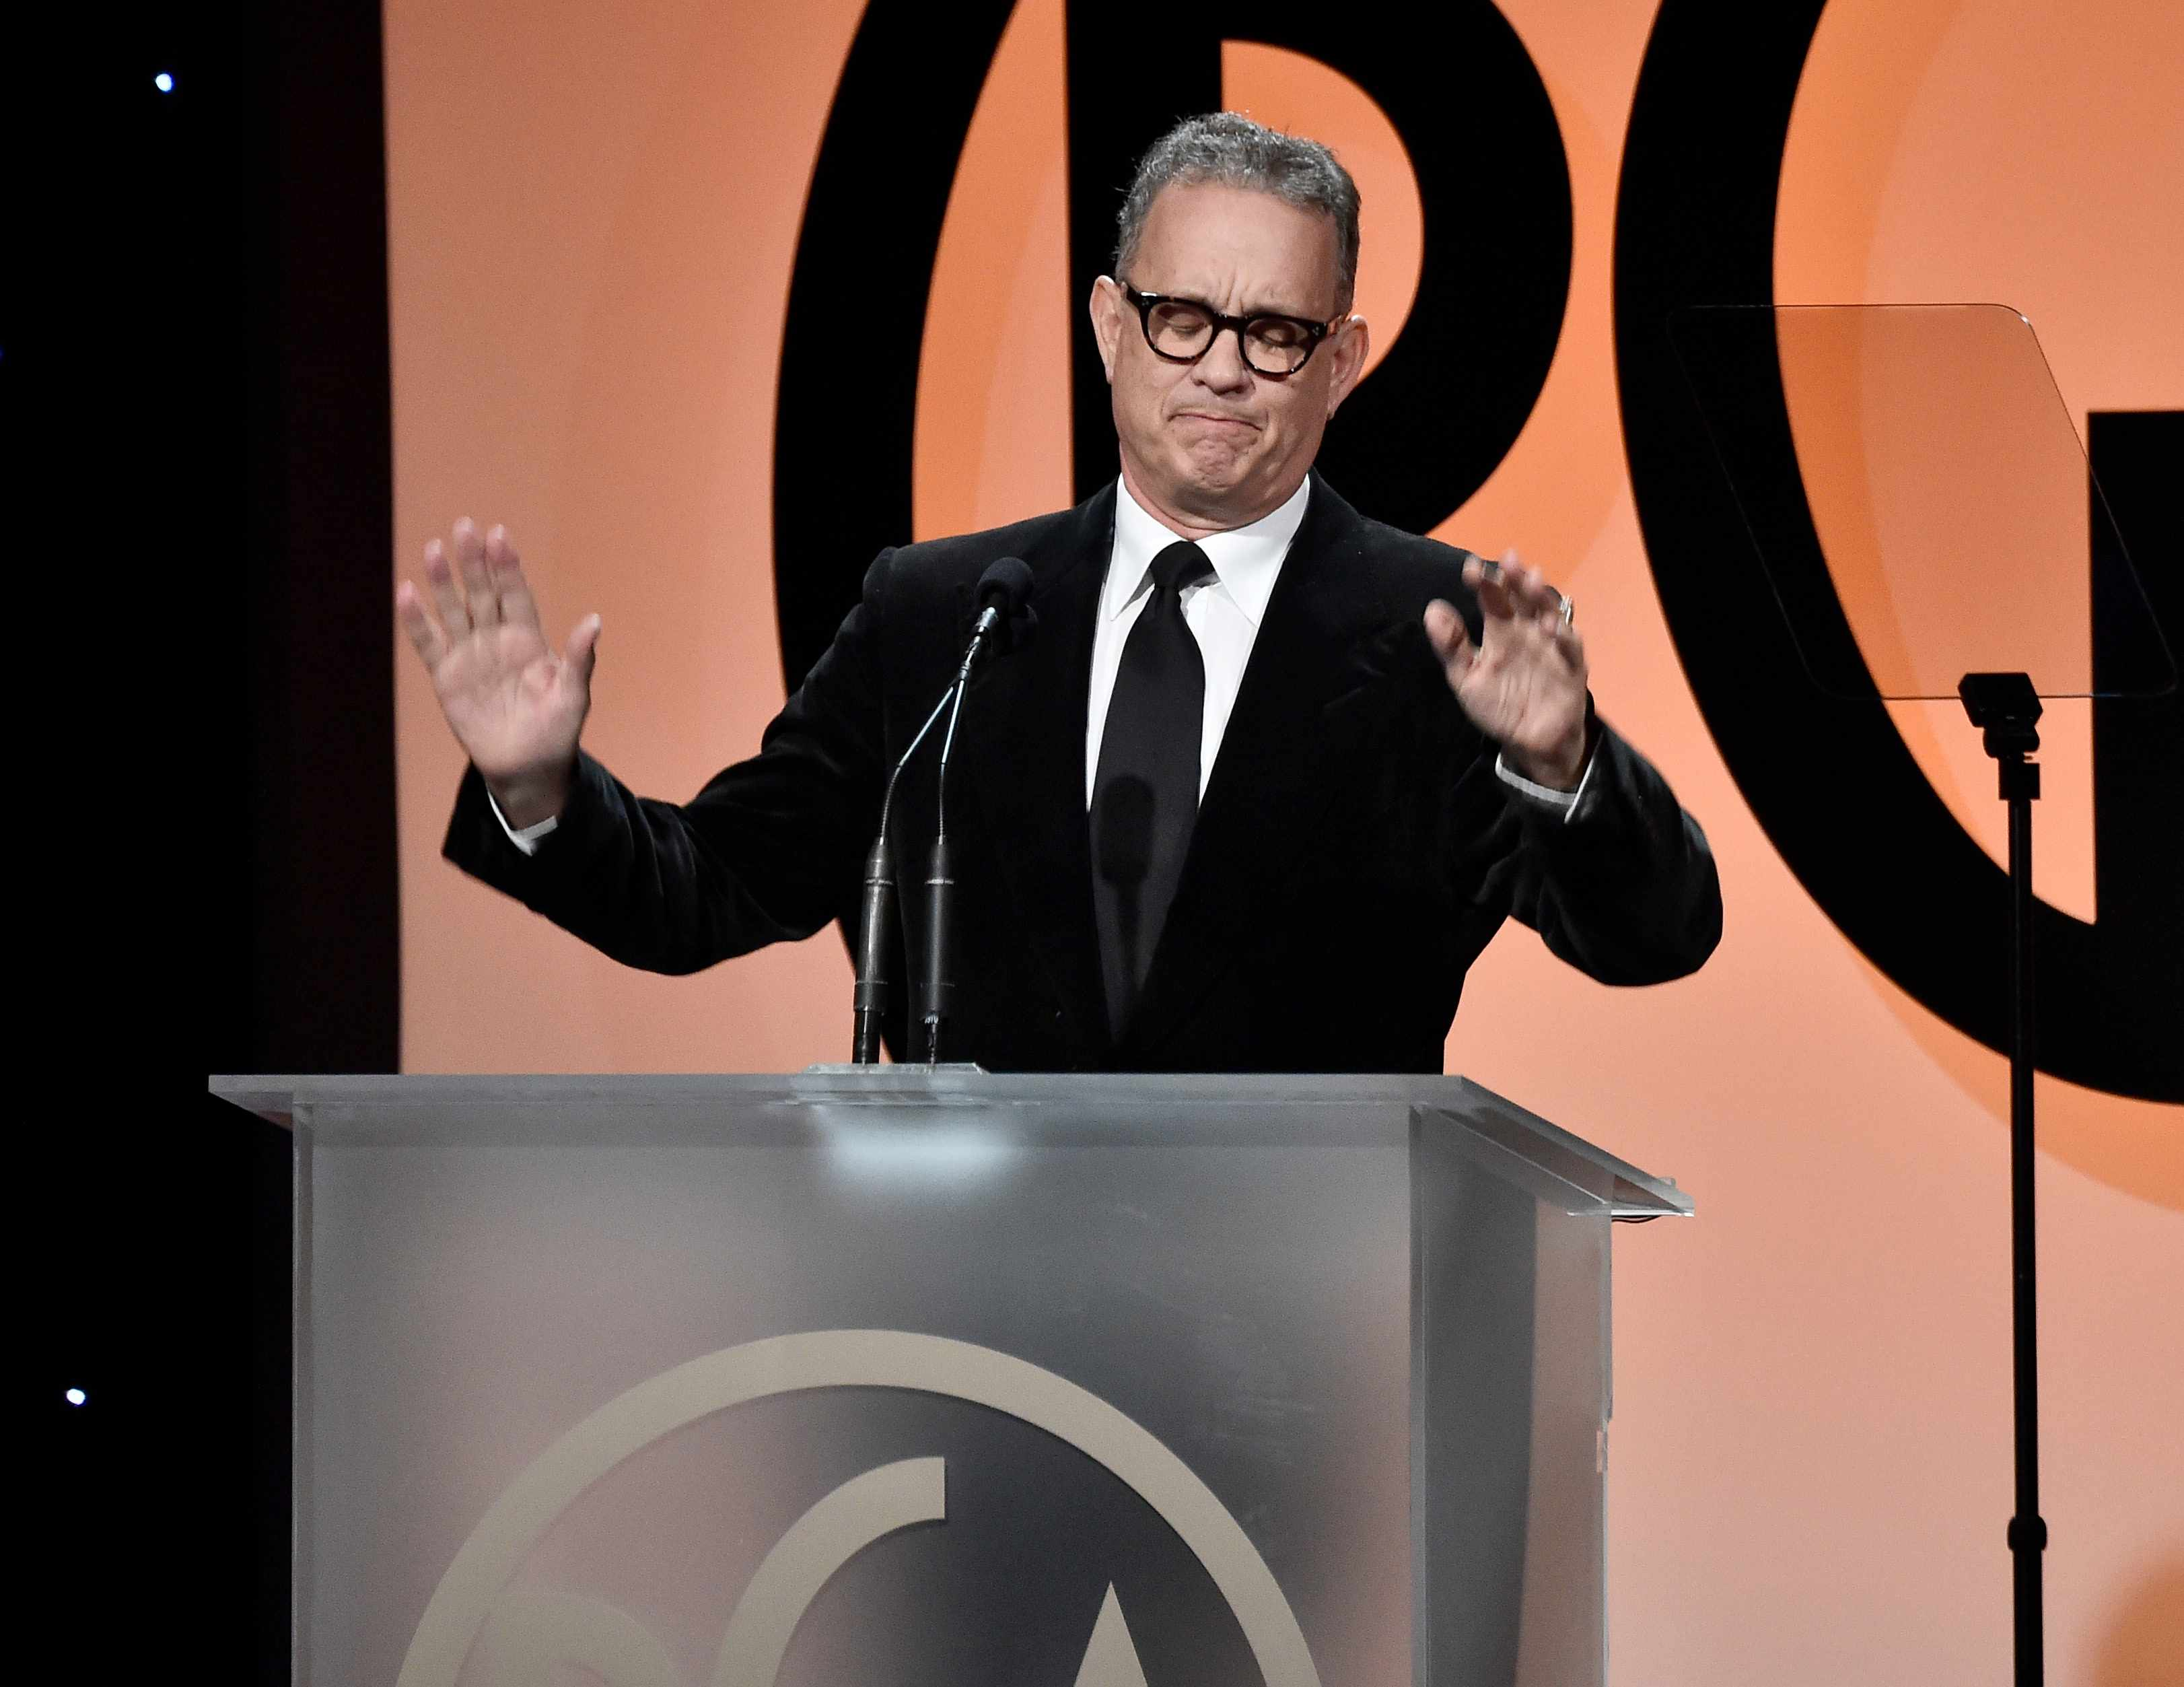 BEVERLY HILLS, CA - JANUARY 20:  Tom Hanks on stage at the 29th Annual Producers Guild Awards  at The Beverly Hilton Hotel on January 20, 2018 in Beverly Hills, California.  (Photo by Frazer Harrison/Getty Images, TG)